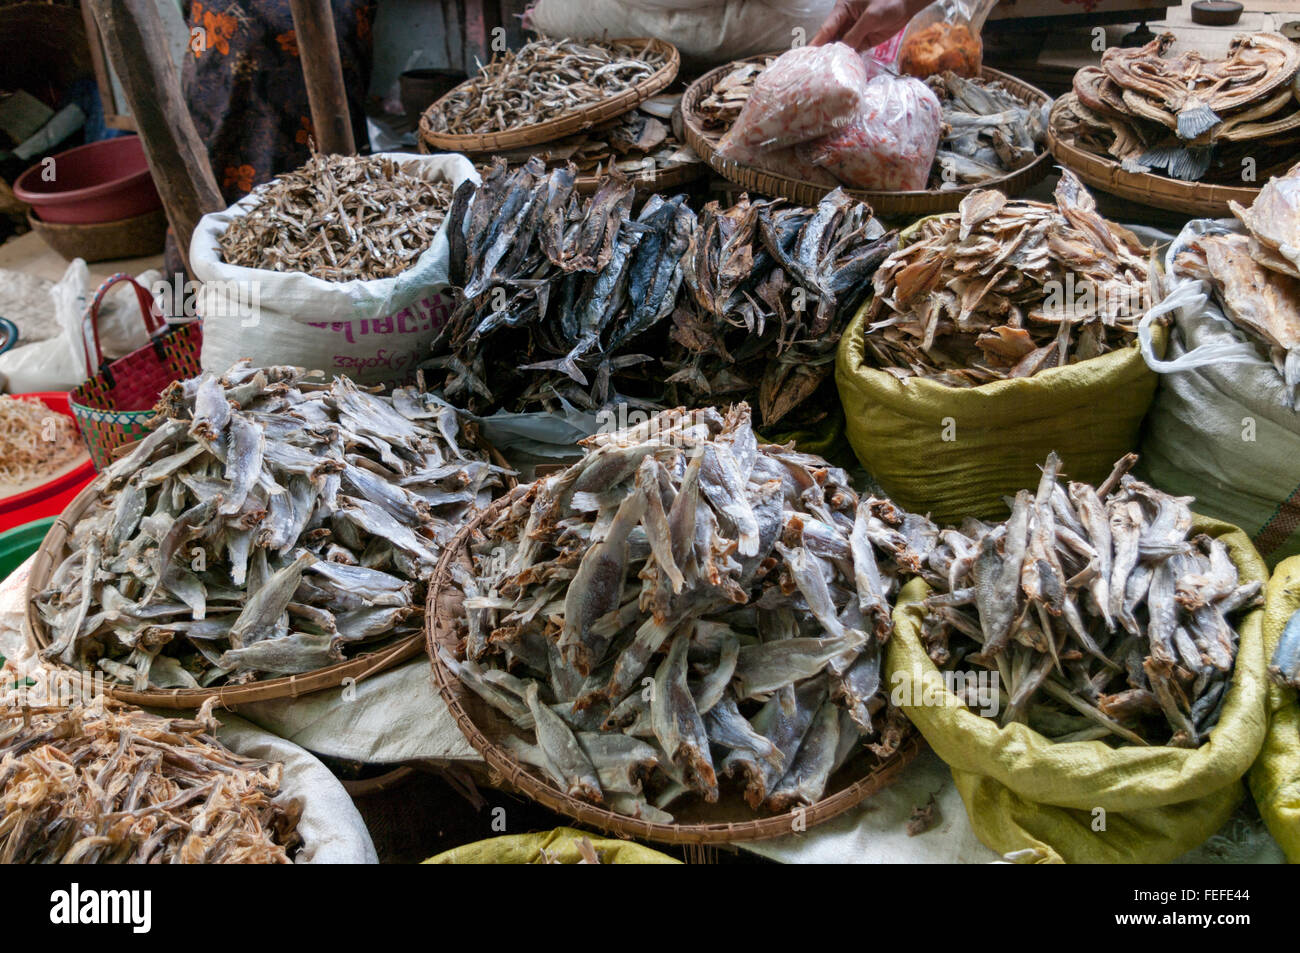 Market stall with different kinds of dried fish. Nyaung U (Bagan), Mandalay Region, Myanmar. - Stock Image